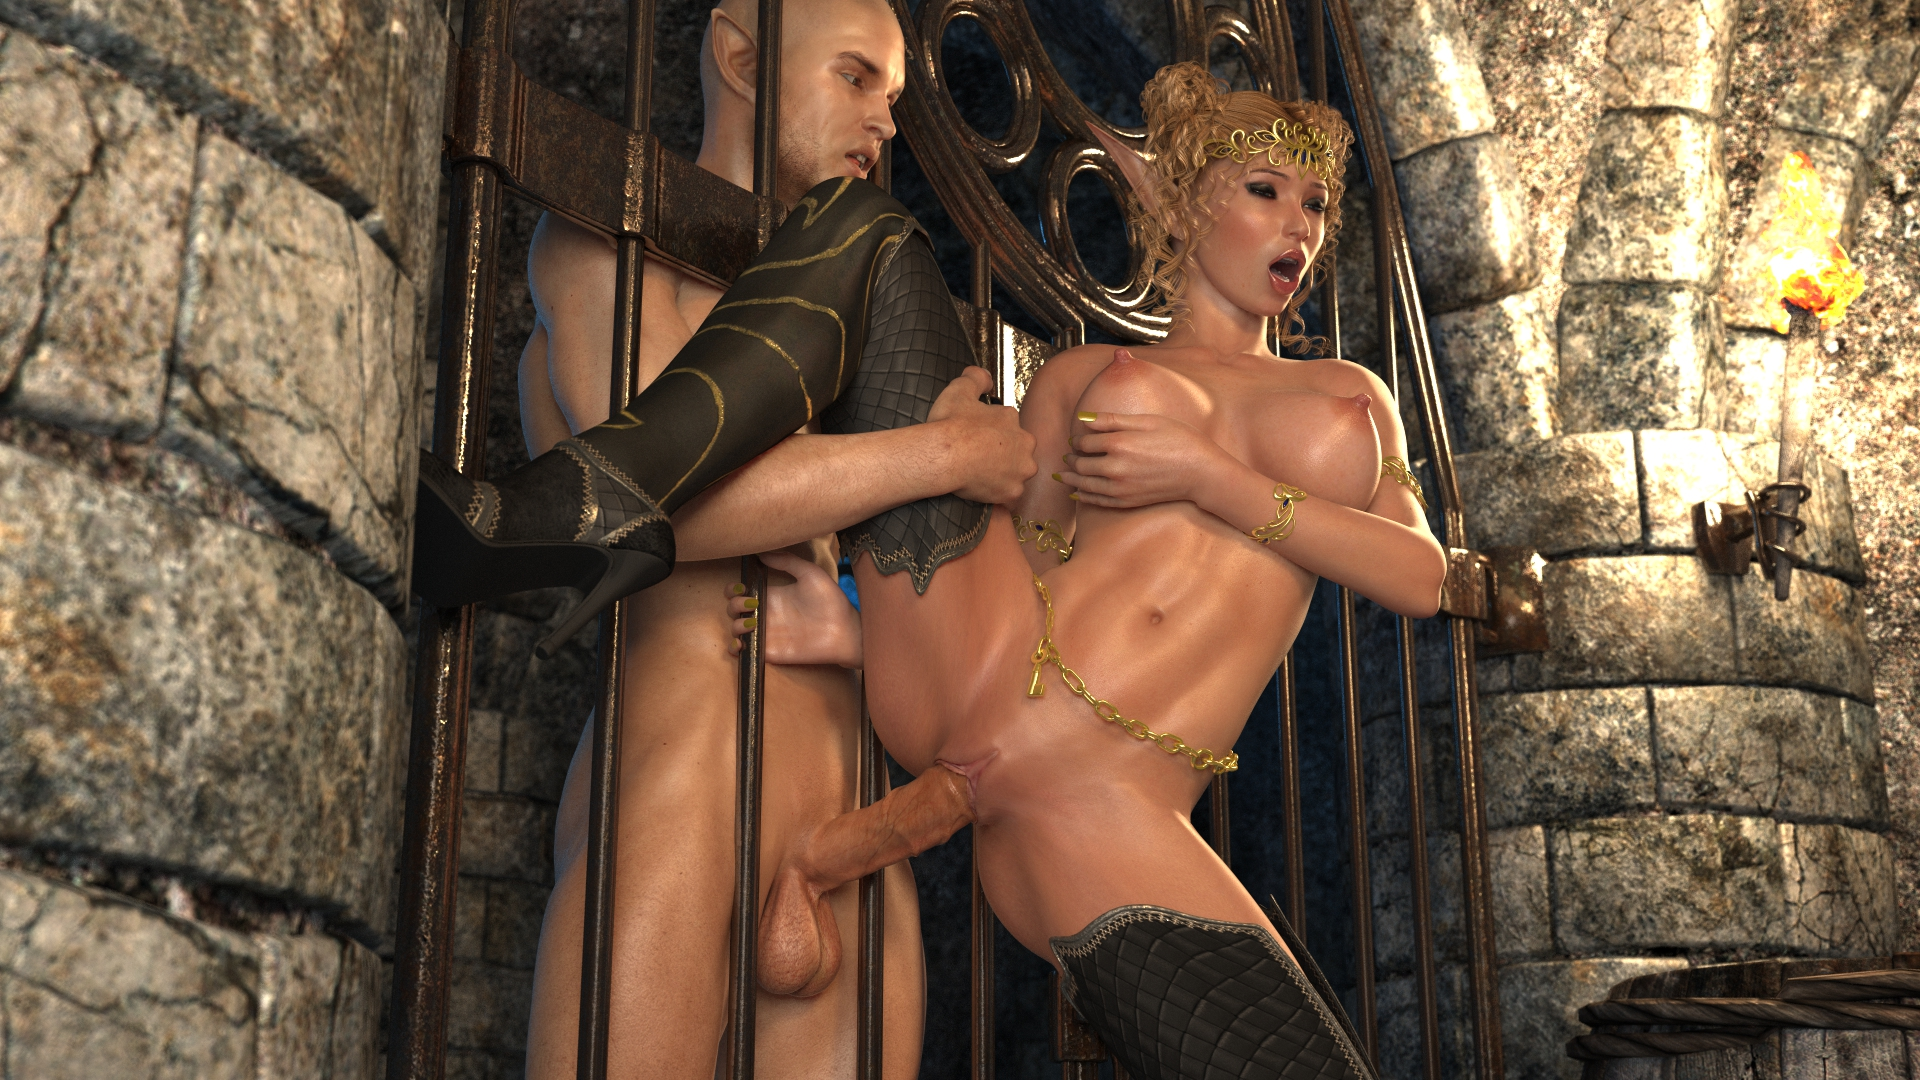 Elf porngames erotic pictures